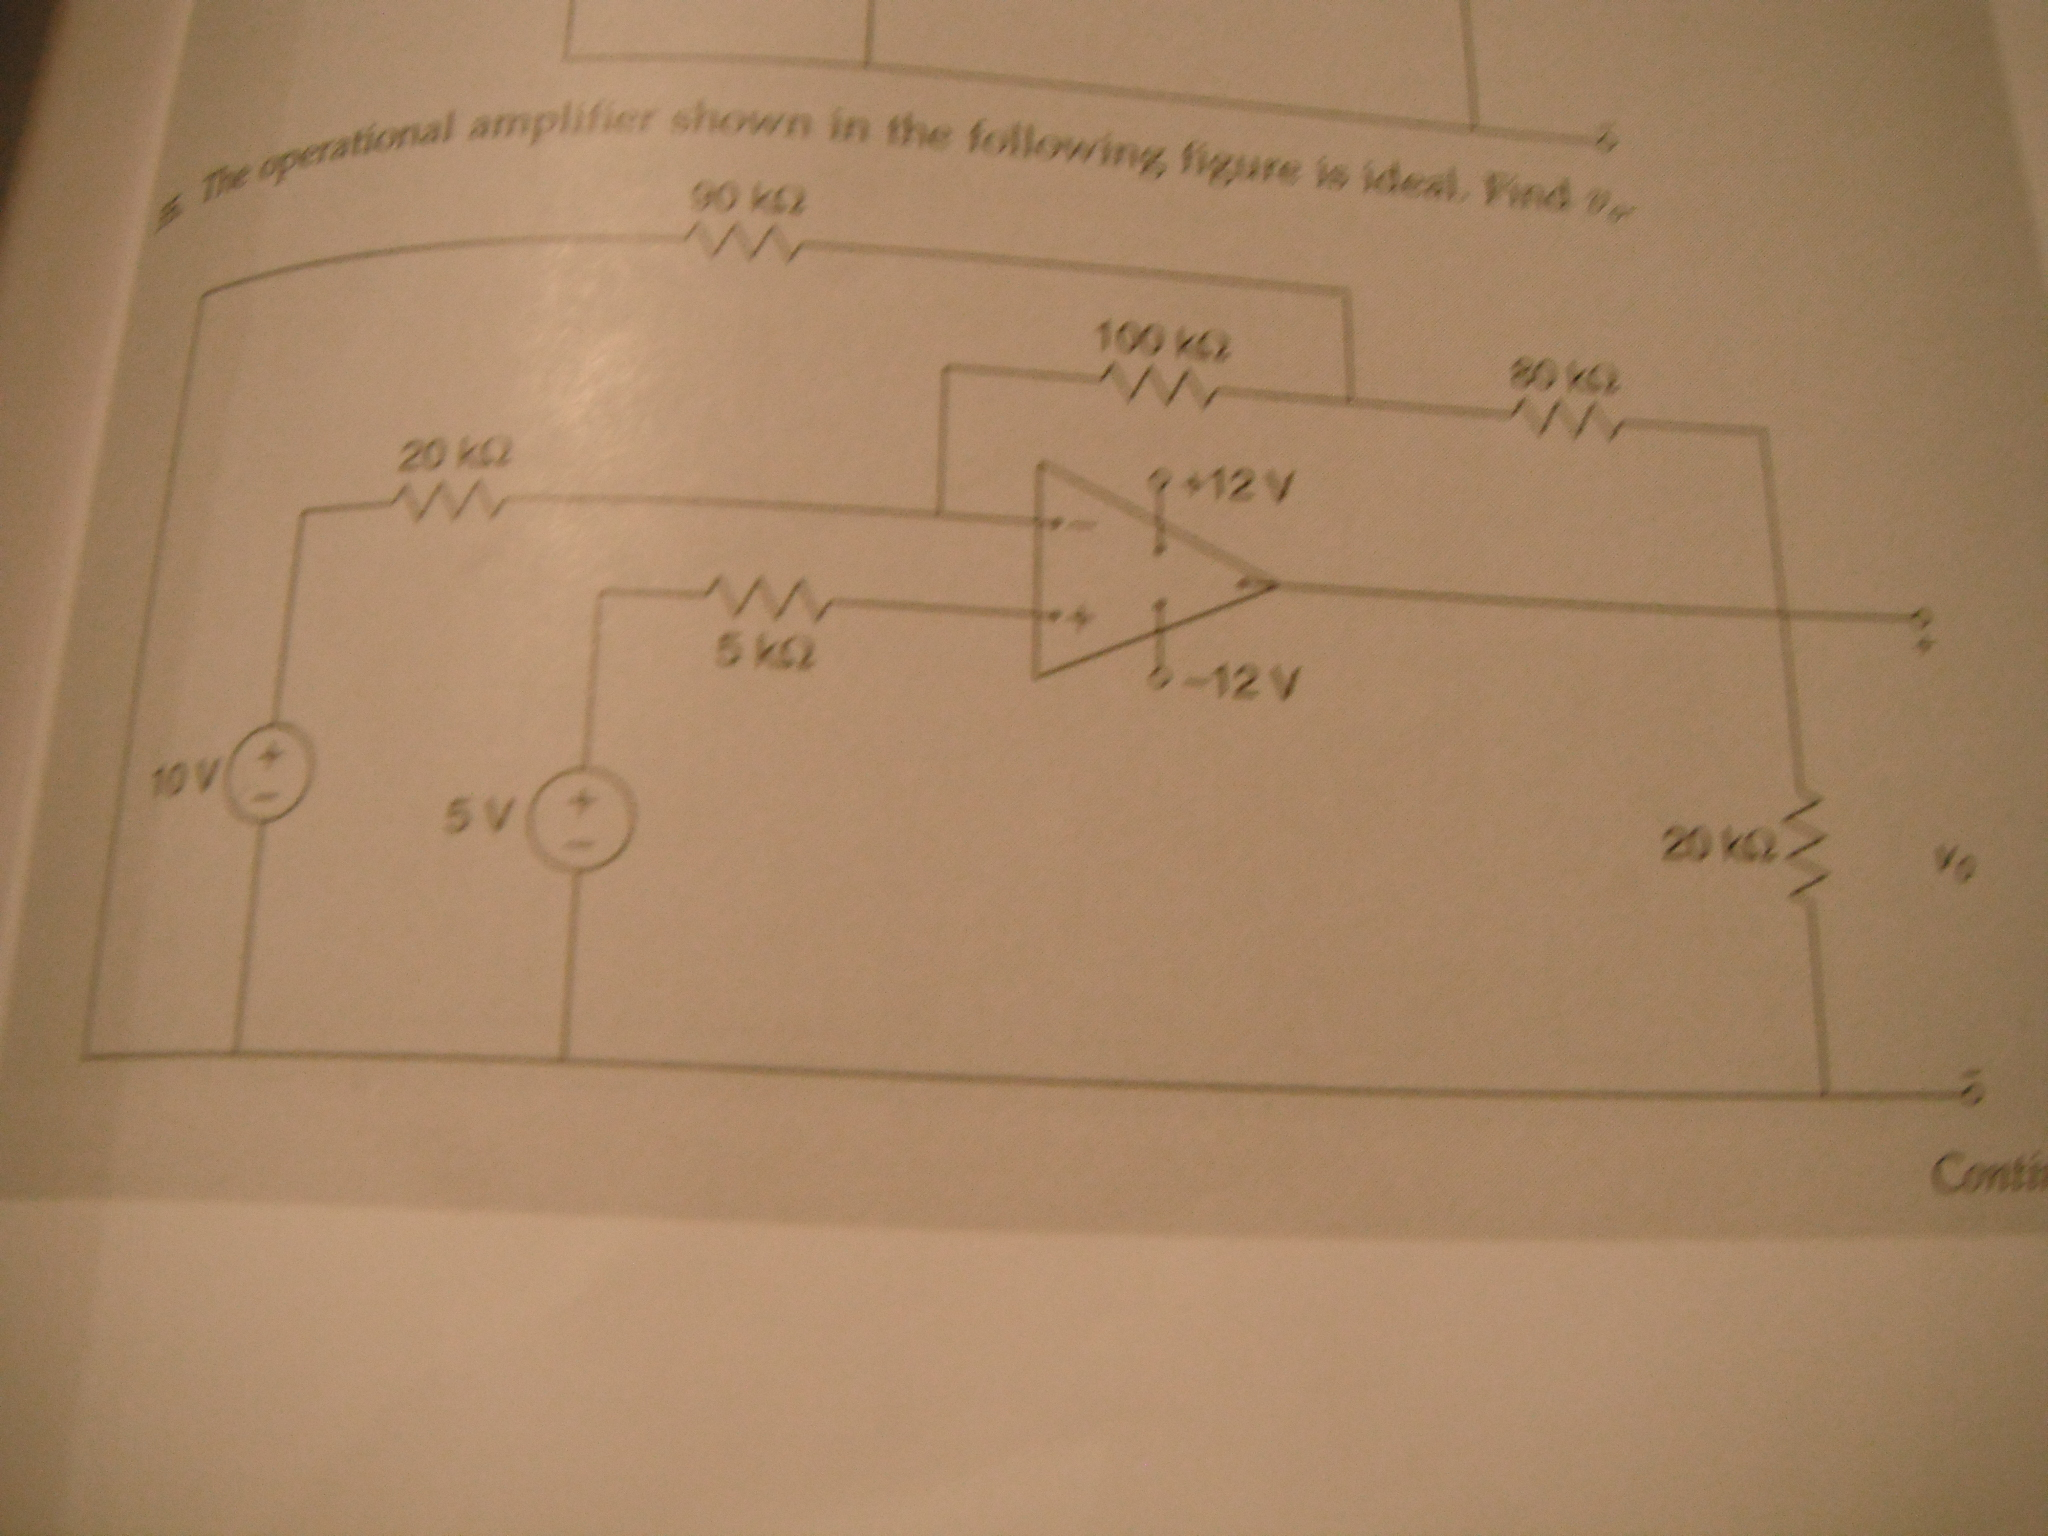 The operational amplifier shown in the following f